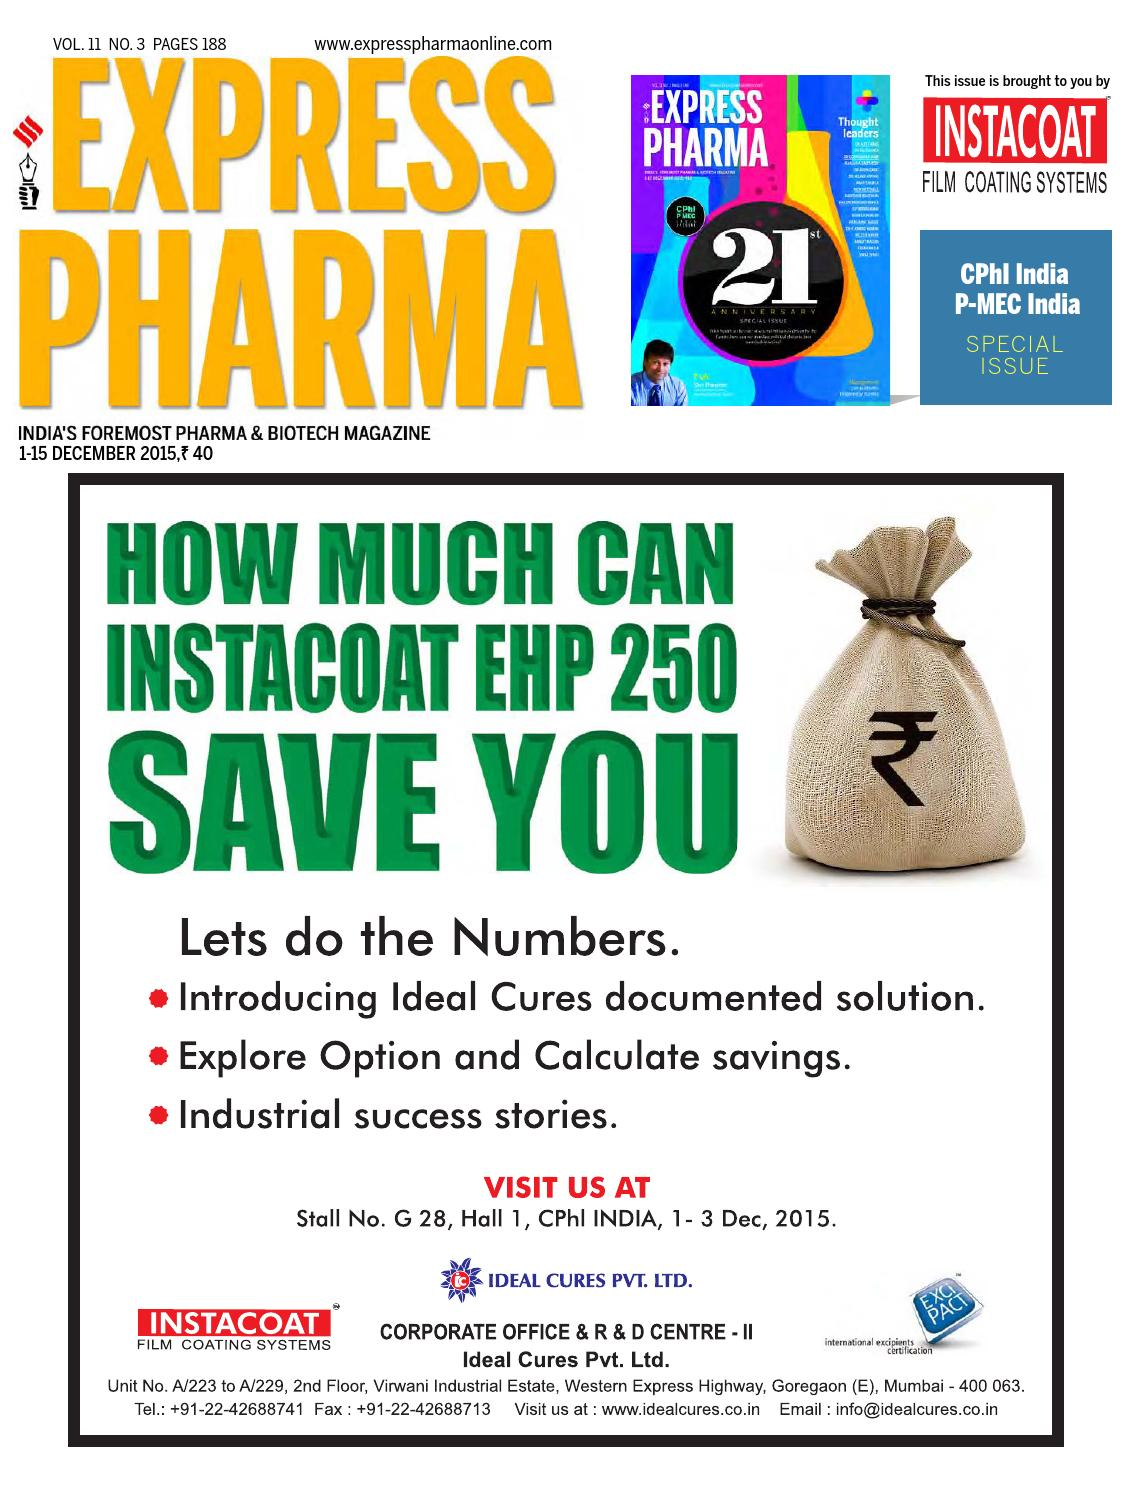 Express Pharma (Vol 11, No 3) December 1-15, 2015 by Indian